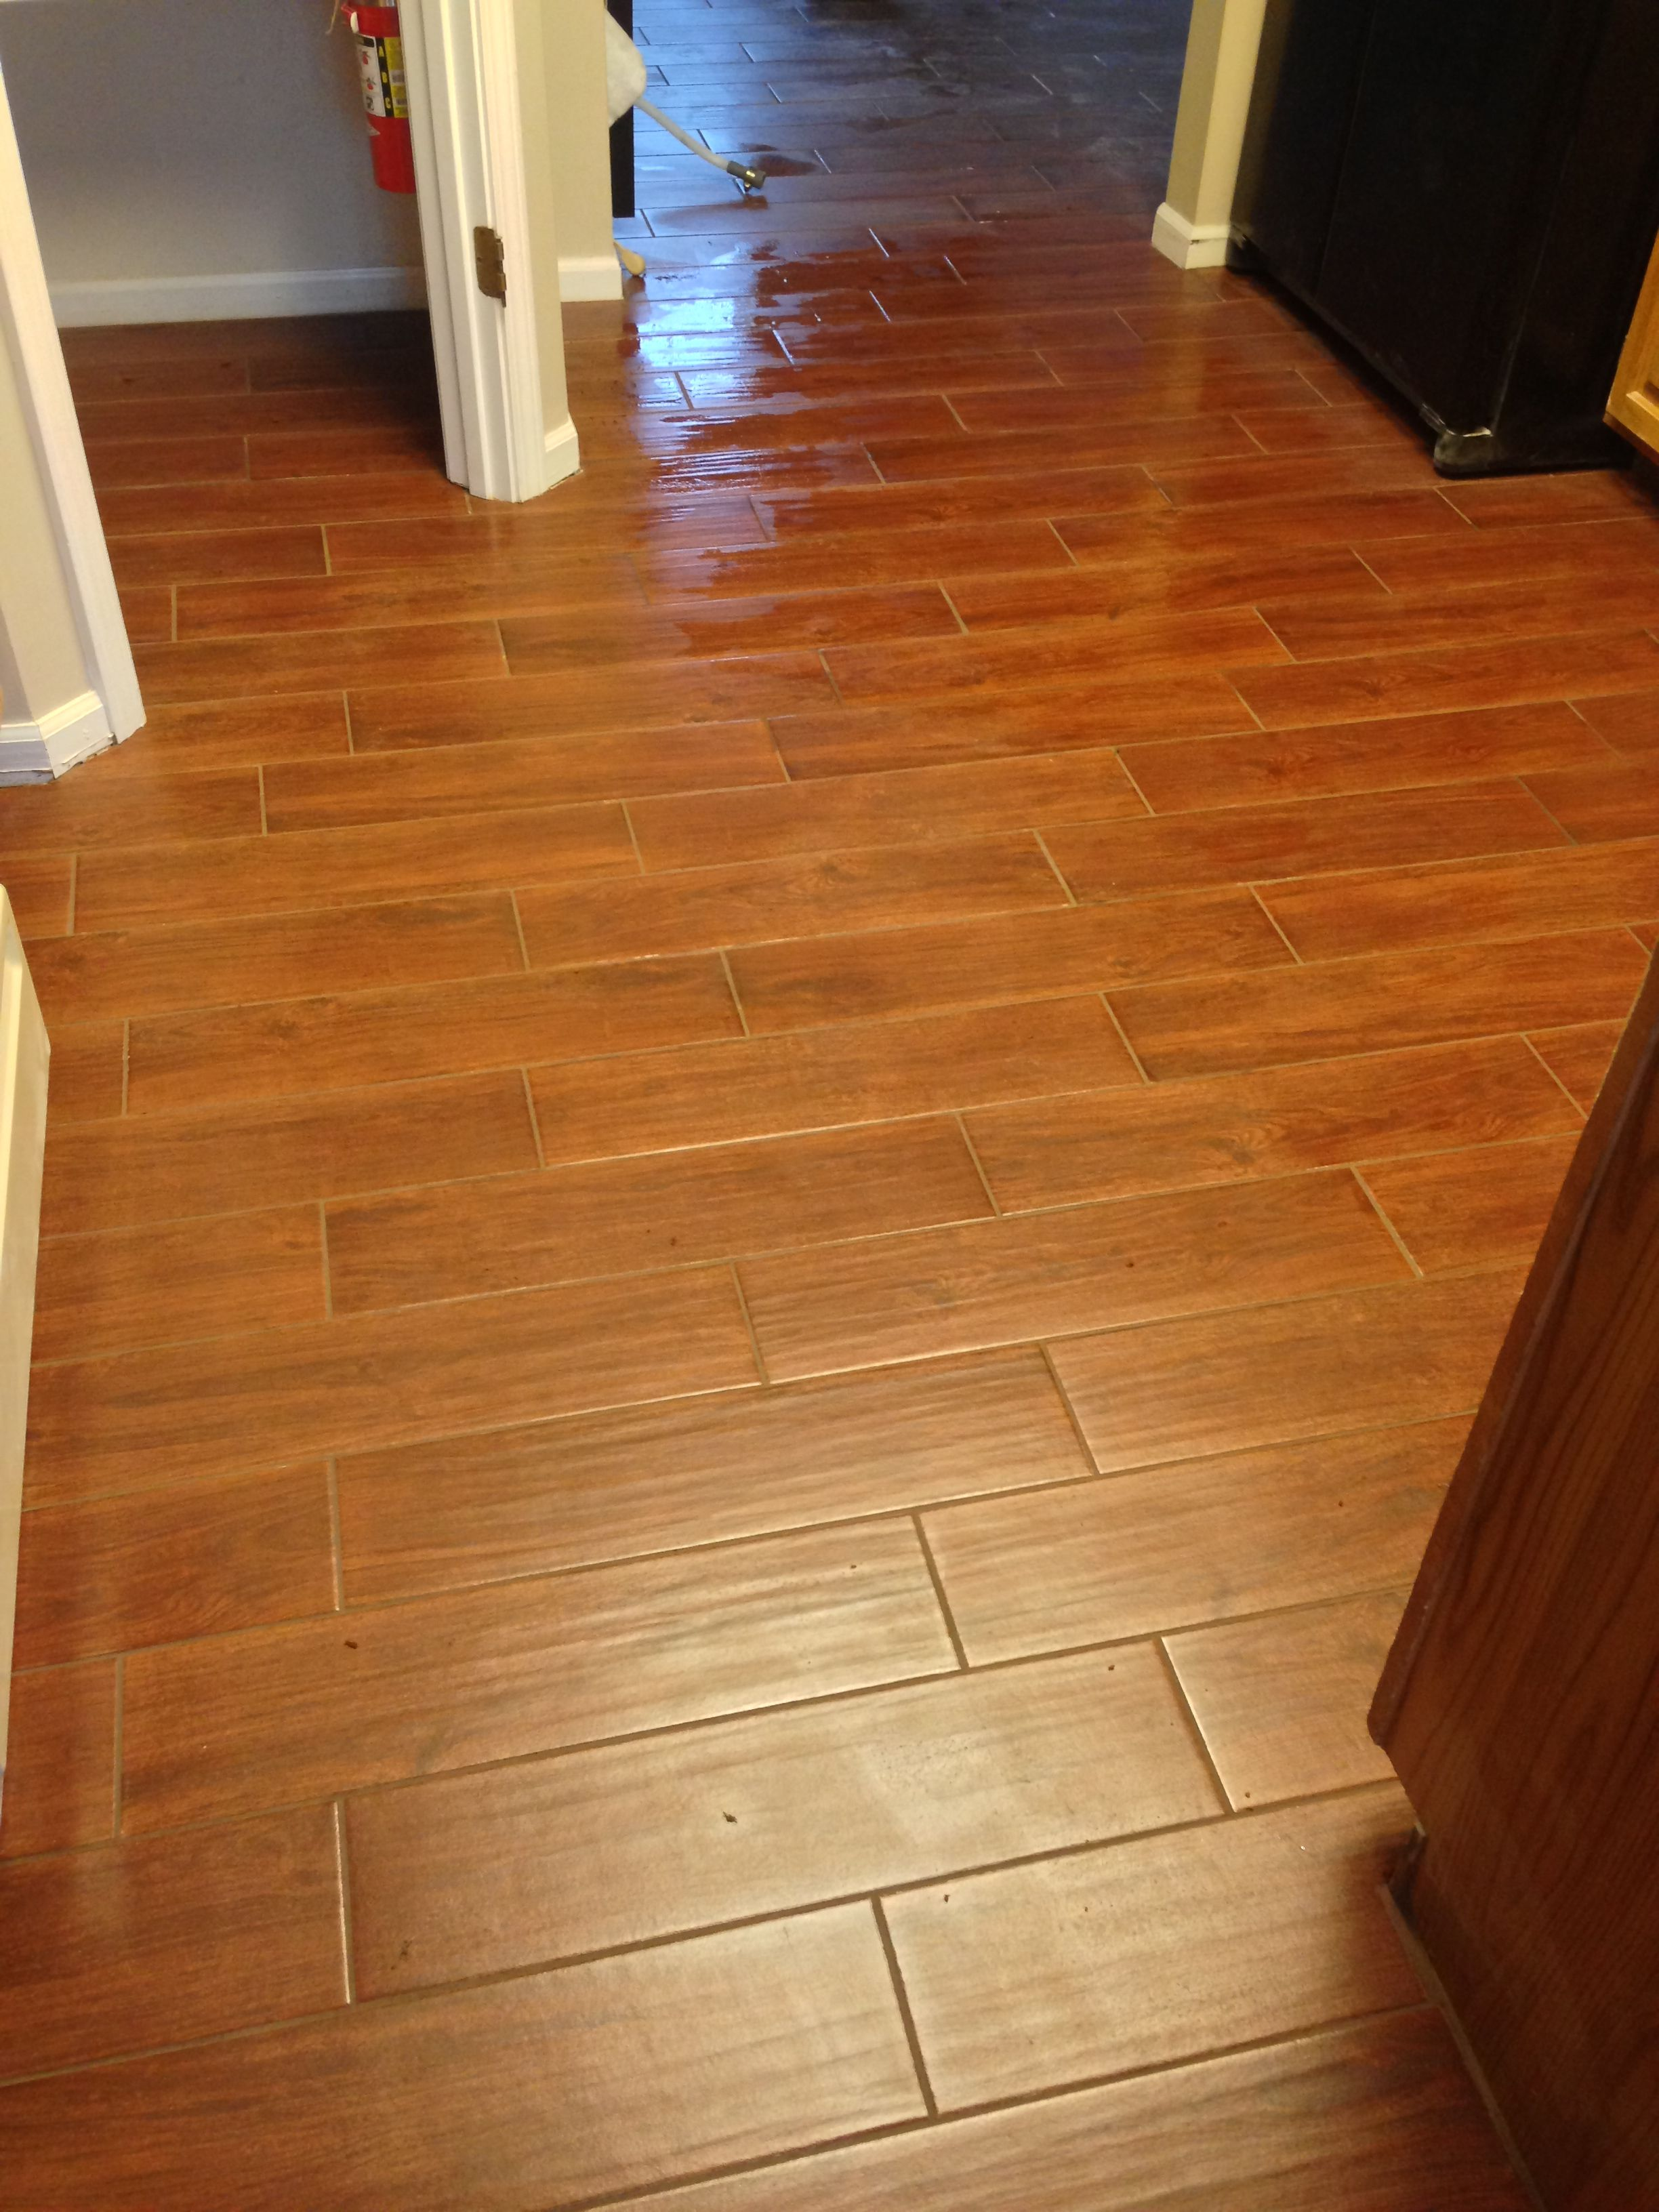 tile floor in family room google search tile floor floor tile wood look tile